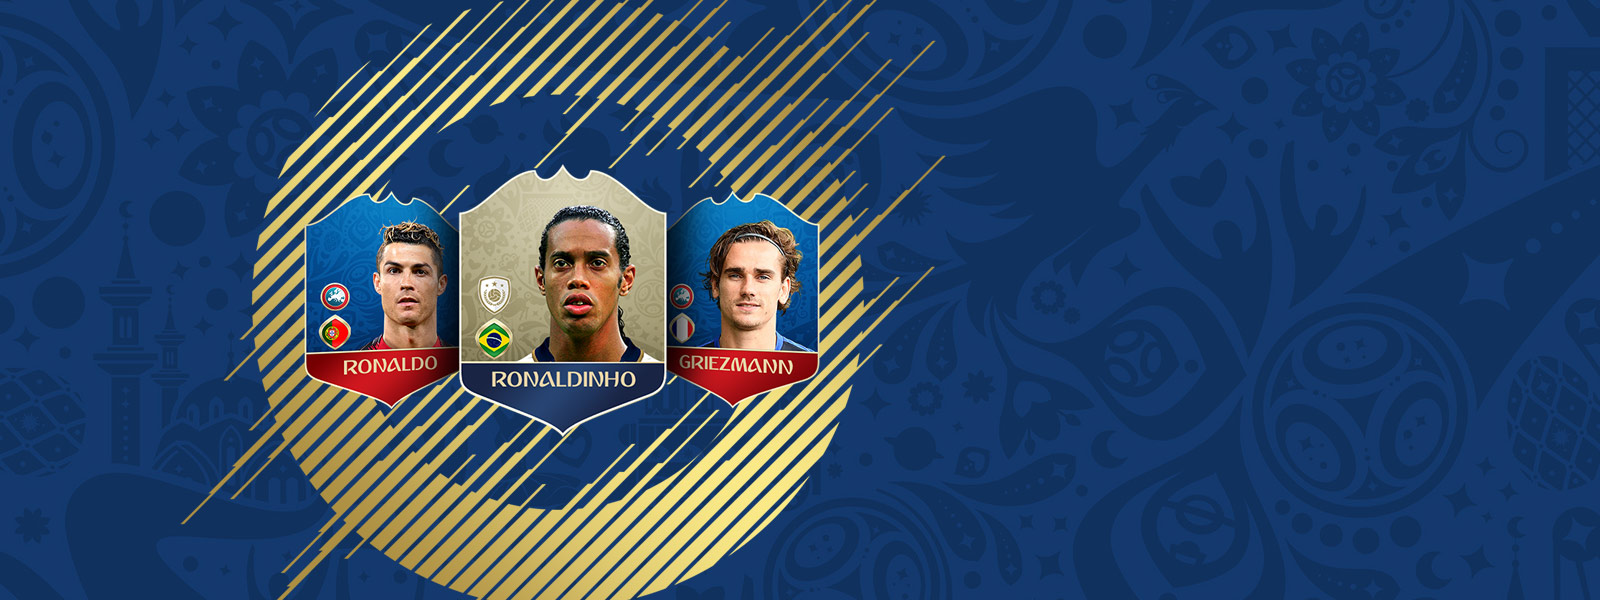 Image of FIFA Ultimate Team player badges for Ronaldo, Ronaldinho and Griezmann